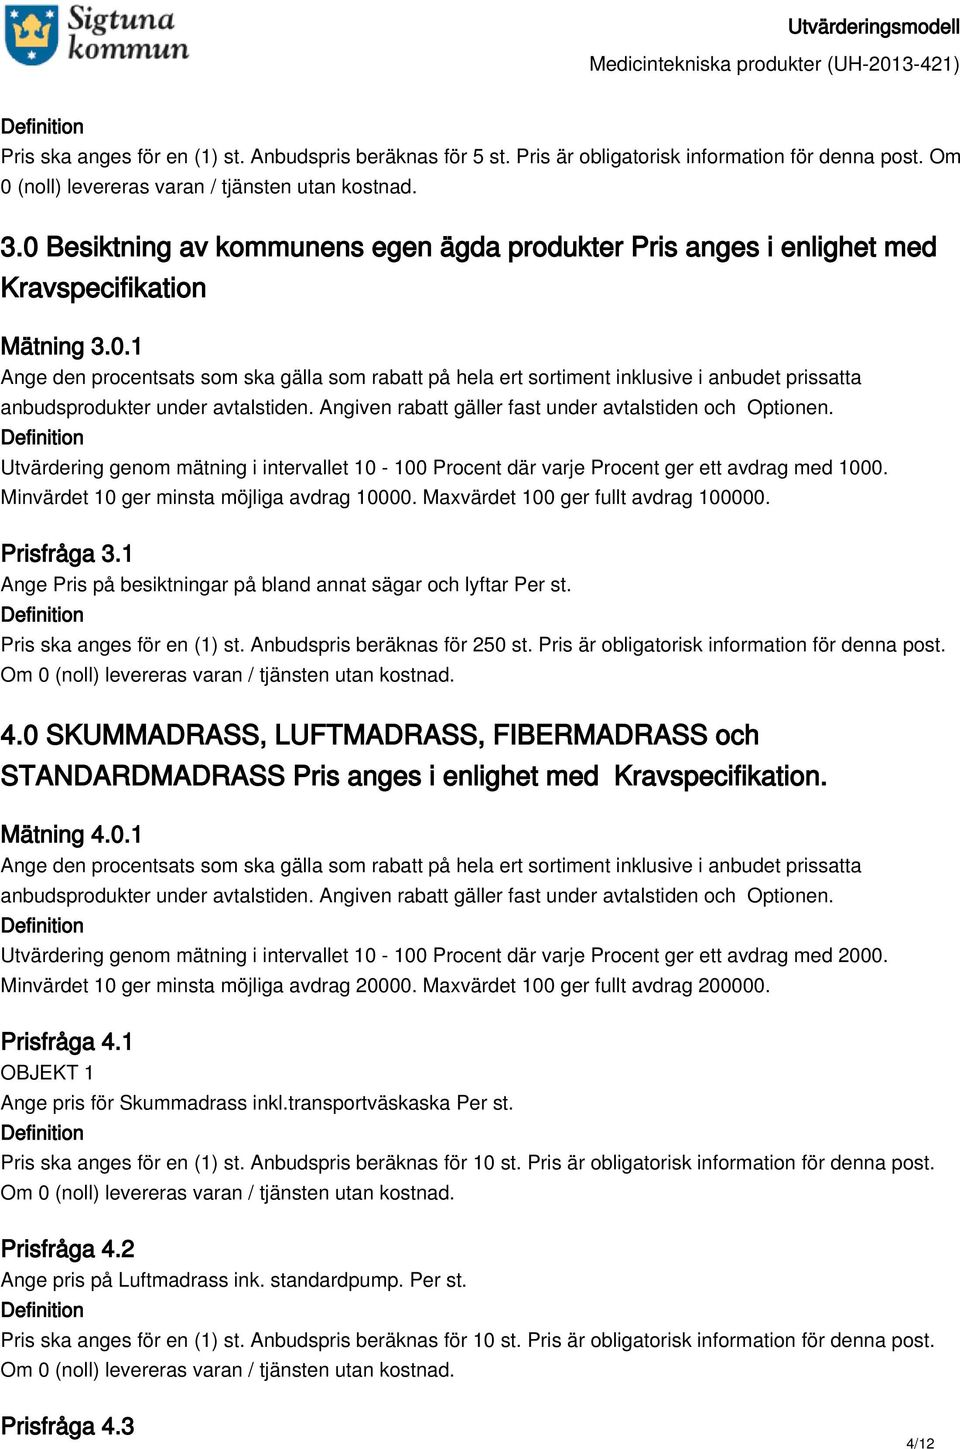 Anbudspris beräknas för 250 st. Pris är obligatorisk information för denna post. 4.0 SKUMMADRASS, LUFTMADRASS, FIBERMADRASS och STANDARDMADRASS Pris anges i enlighet med Kravspecifikation. Mätning 4.